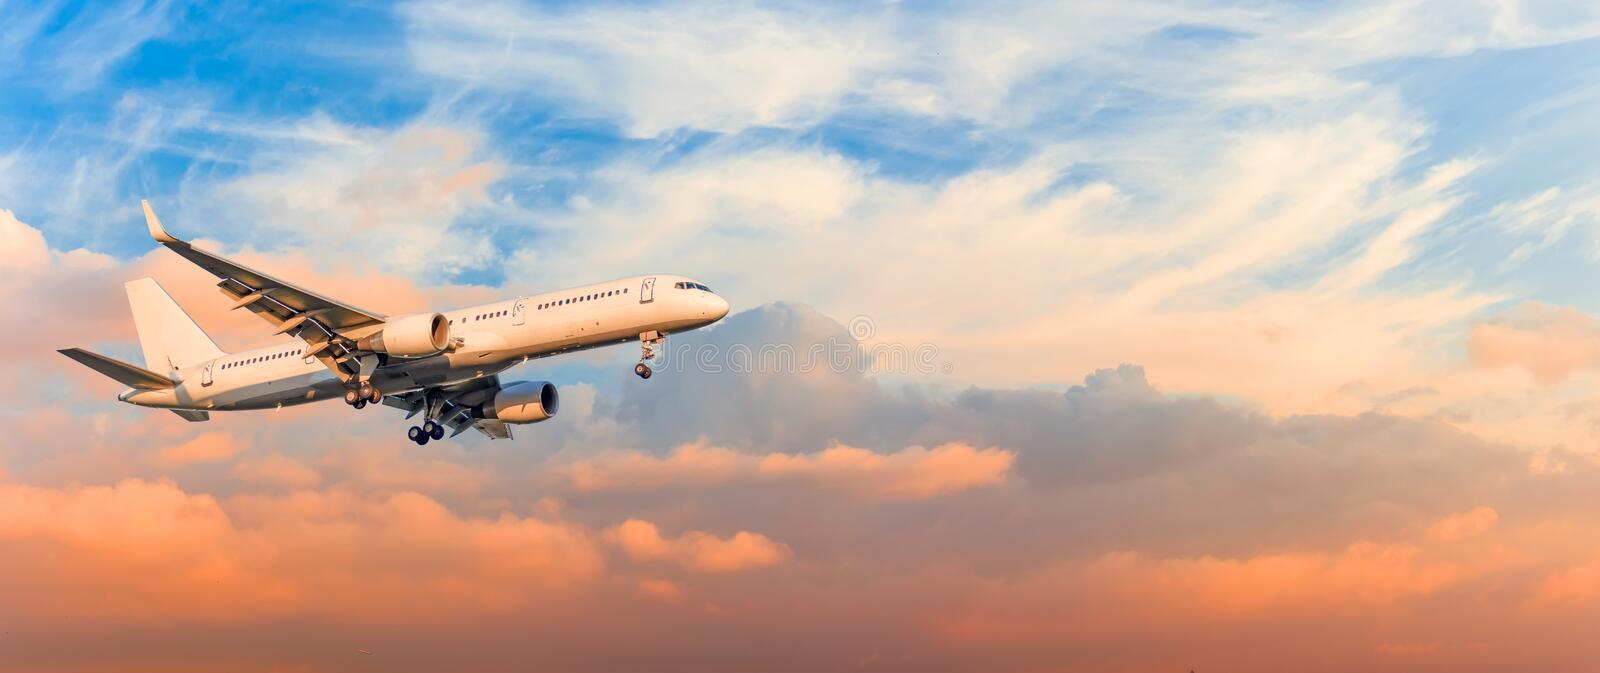 Passenger airplane is landing approach gear released, against sunset sky clouds, panorama. Travel aviation, flight, trip stock photos